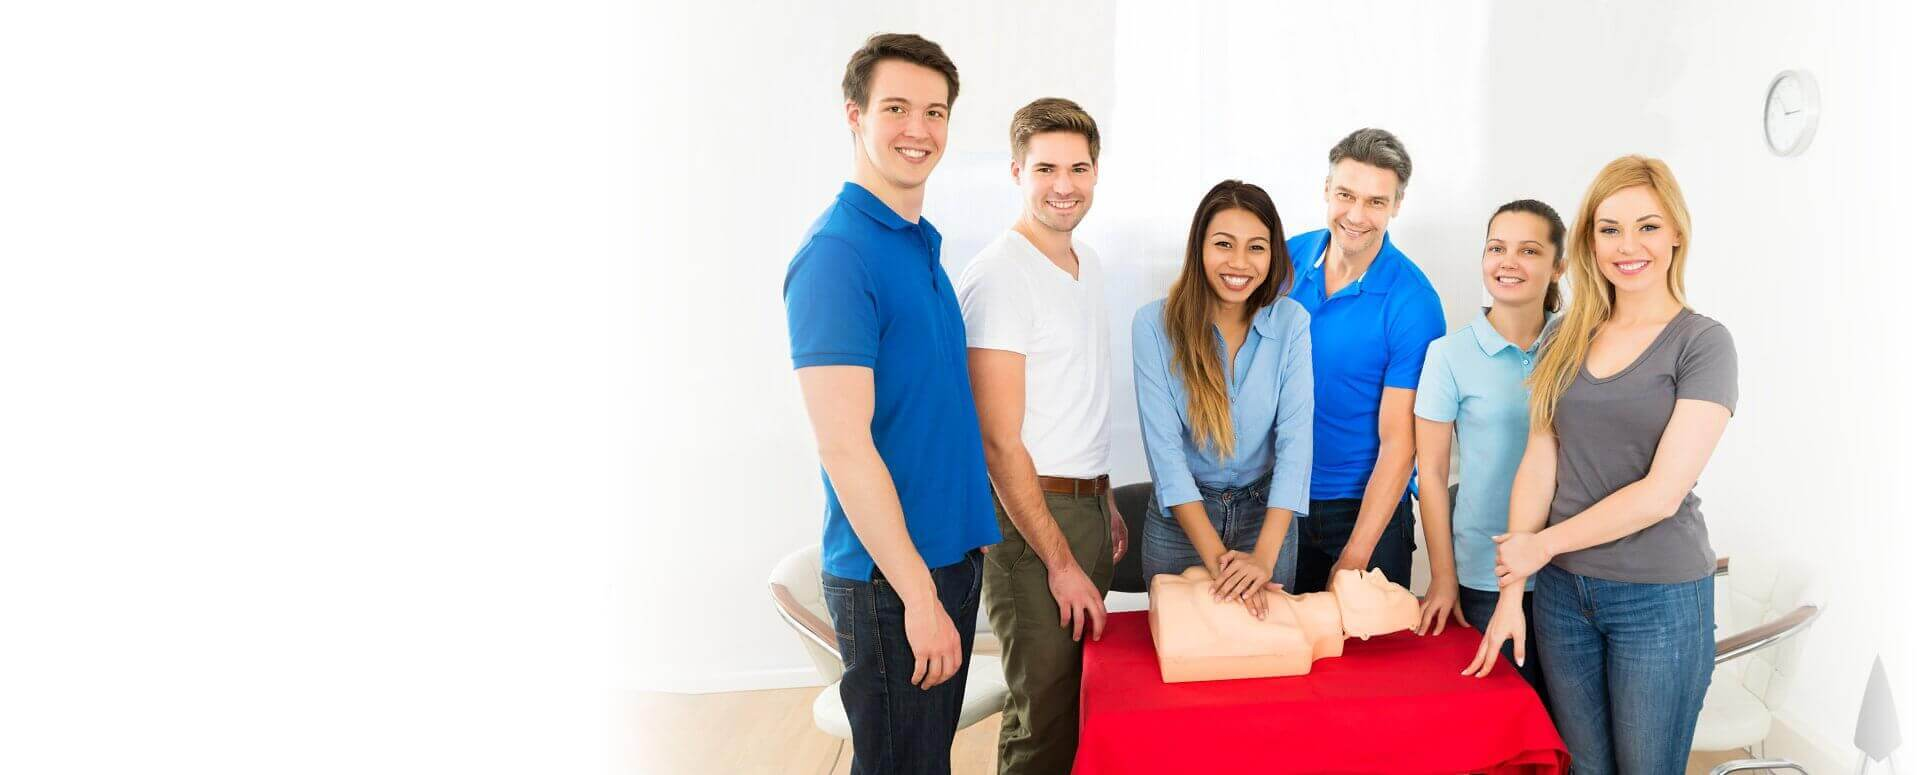 nurses doing cpr smiling